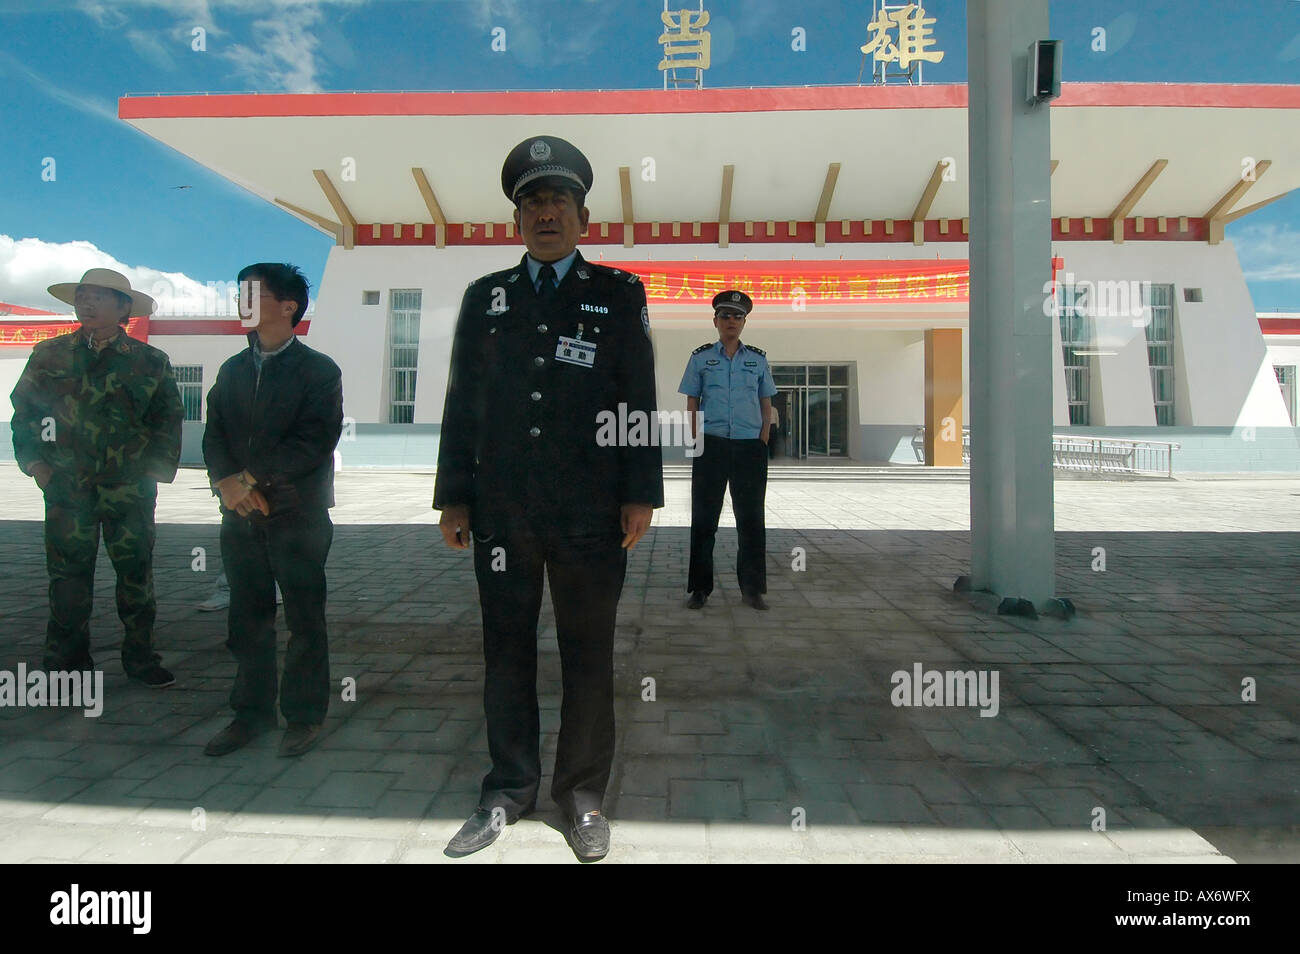 Police and passengers wait at Damxung train station, last stop before Lhasa on the Tibet railway, Tibet train - Stock Image